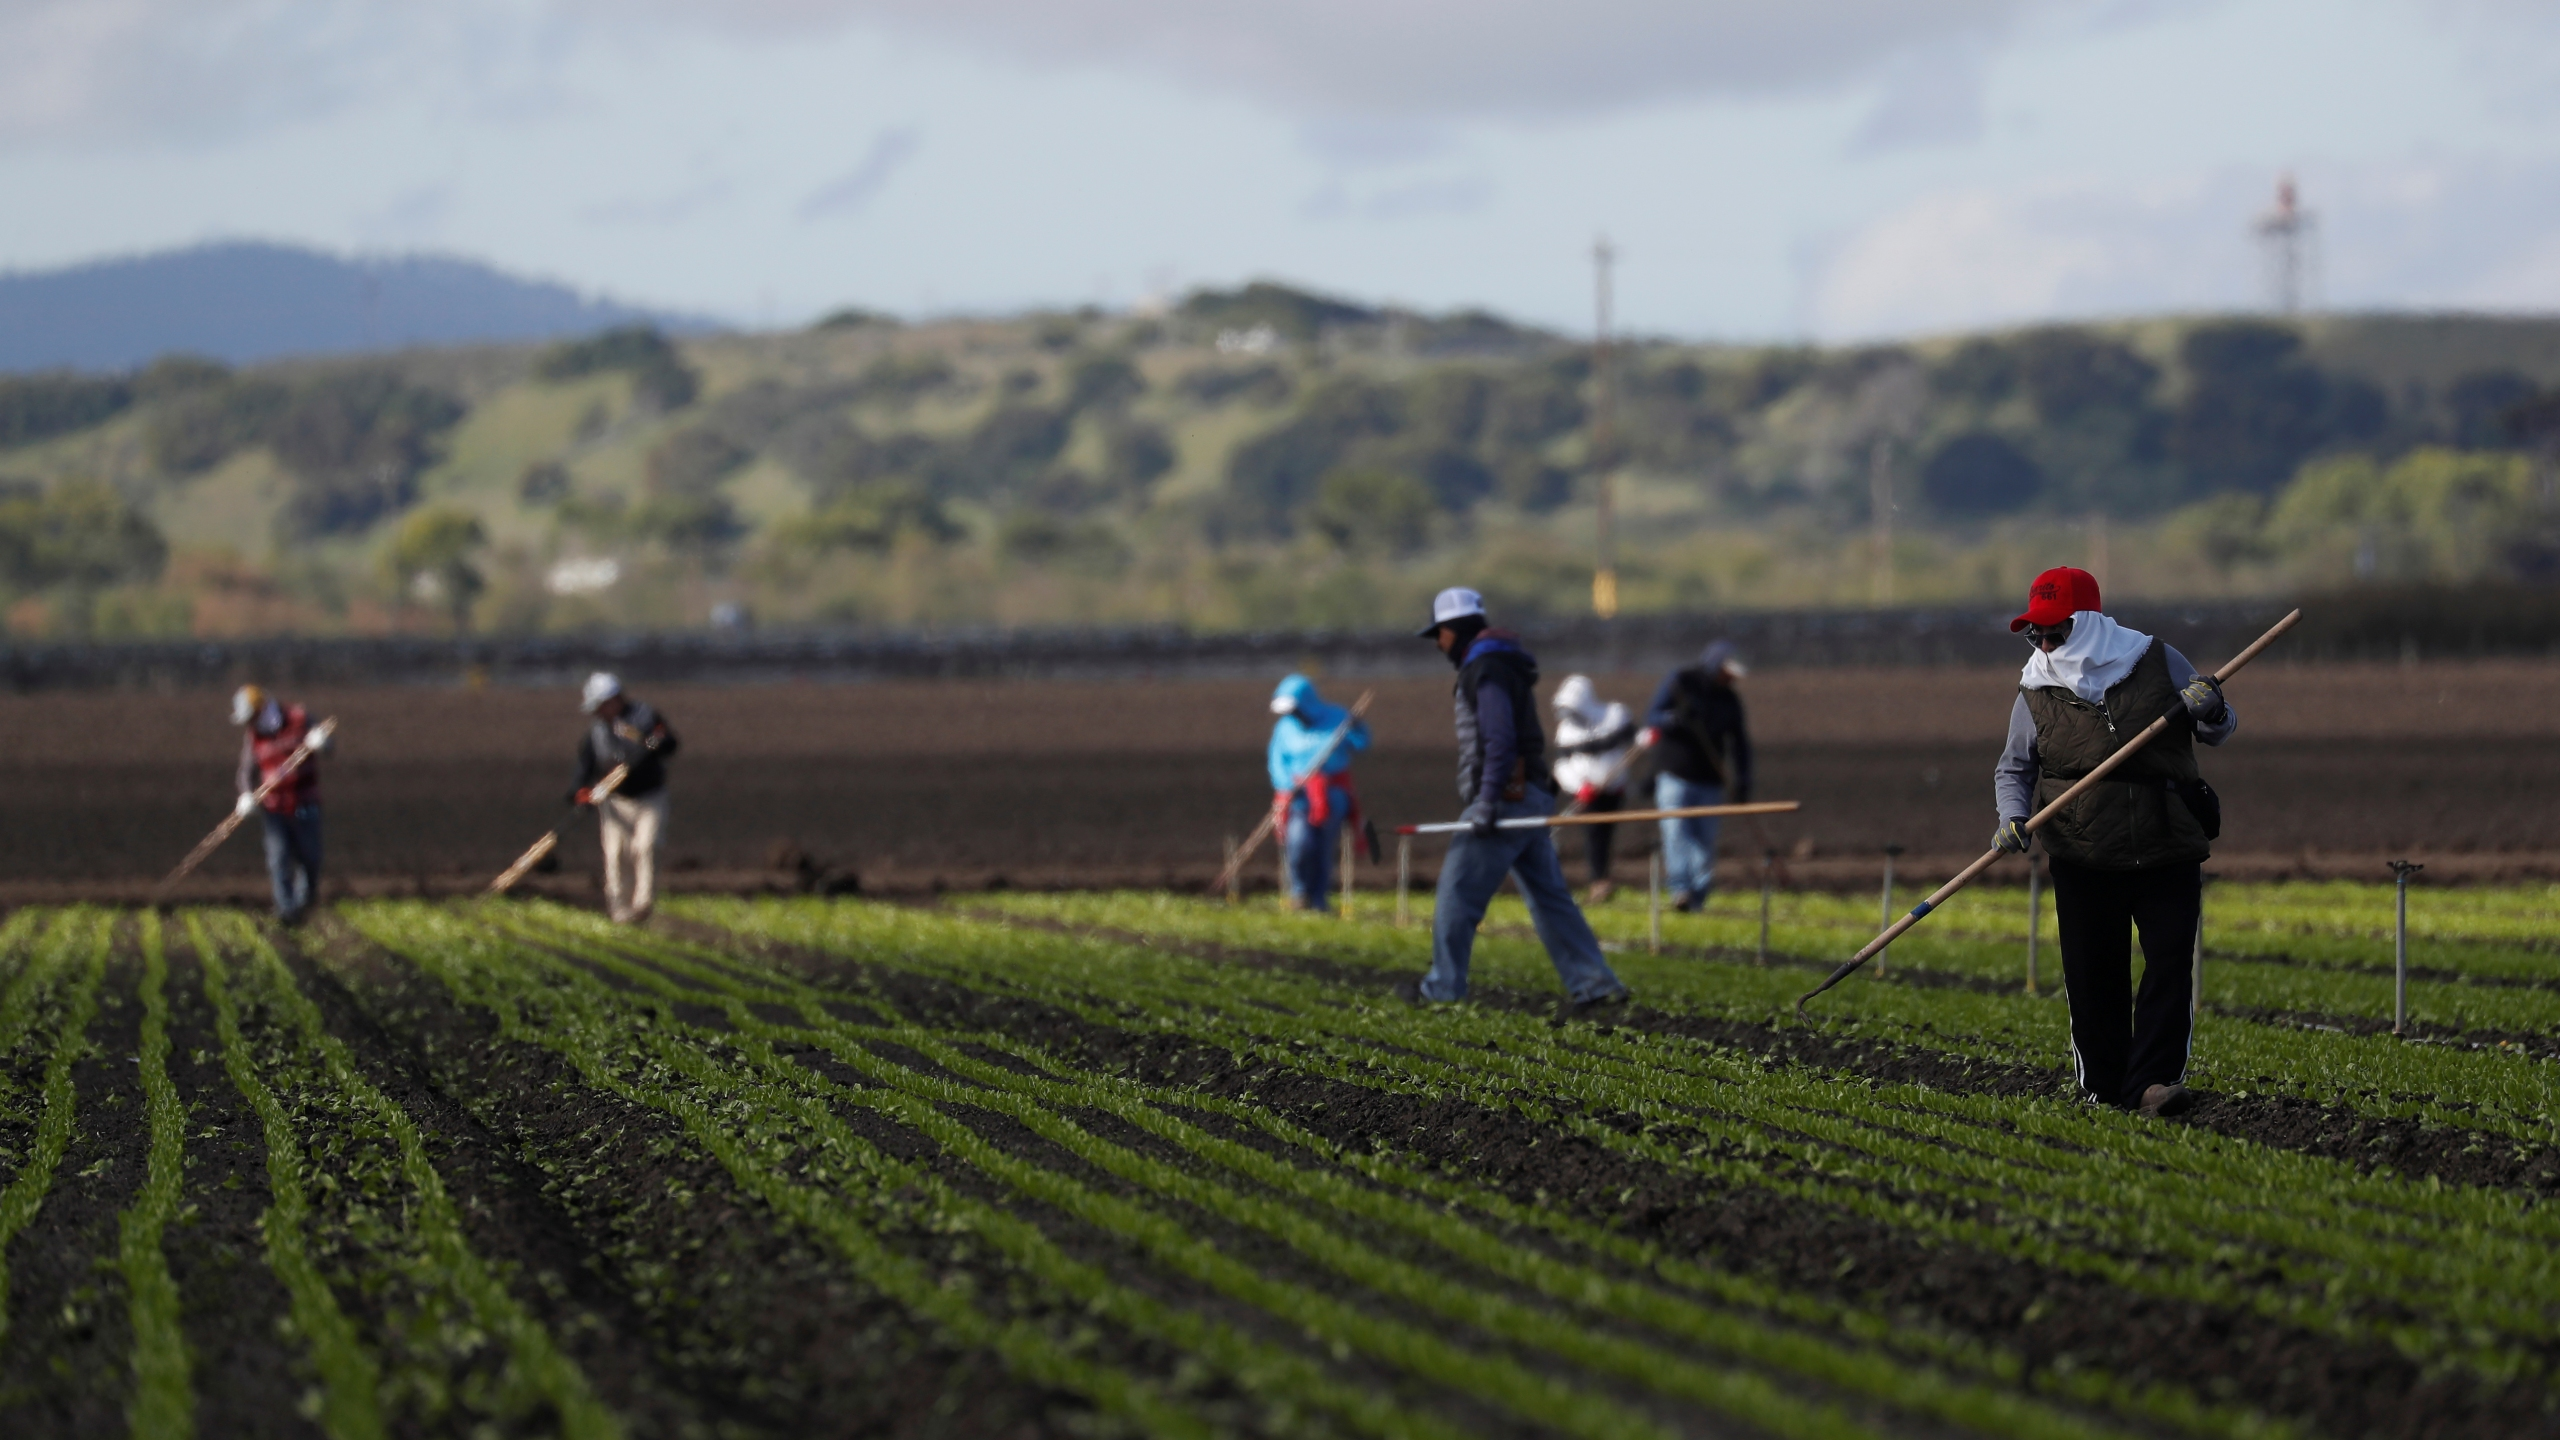 Migrant workers clean fields amid an outbreak of the coronavirus disease (COVID-19), in the Salinas Valley near Salinas, California, U.S., March 30, 2020. (REUTERS/Shannon Stapleton)